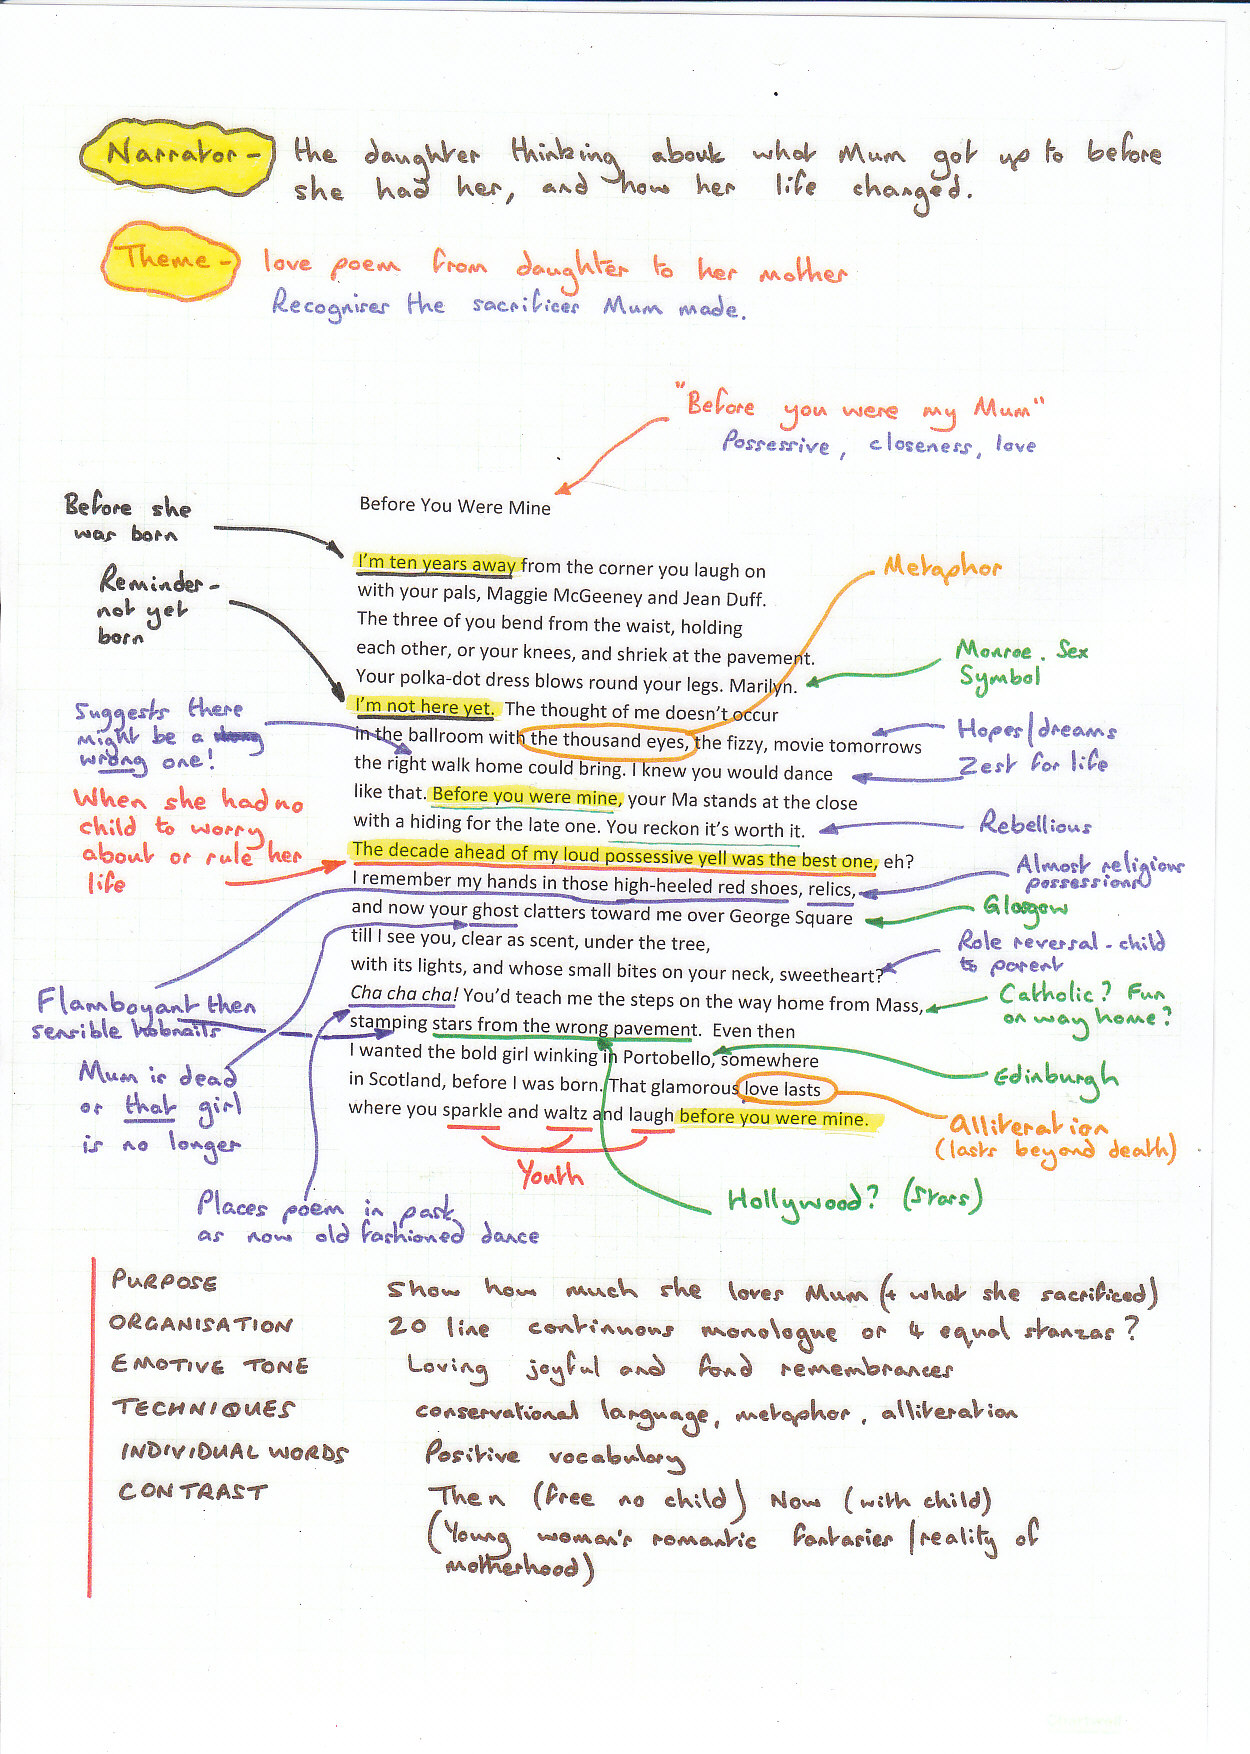 annotate essays An annotated bibliography is a working list of references—books, journal articles, online documents, etc—that you will use for an essay, research paper, or project although there are no strict formatting guidelines for the annotated bibliography itself, each reference should be cited in apa format.